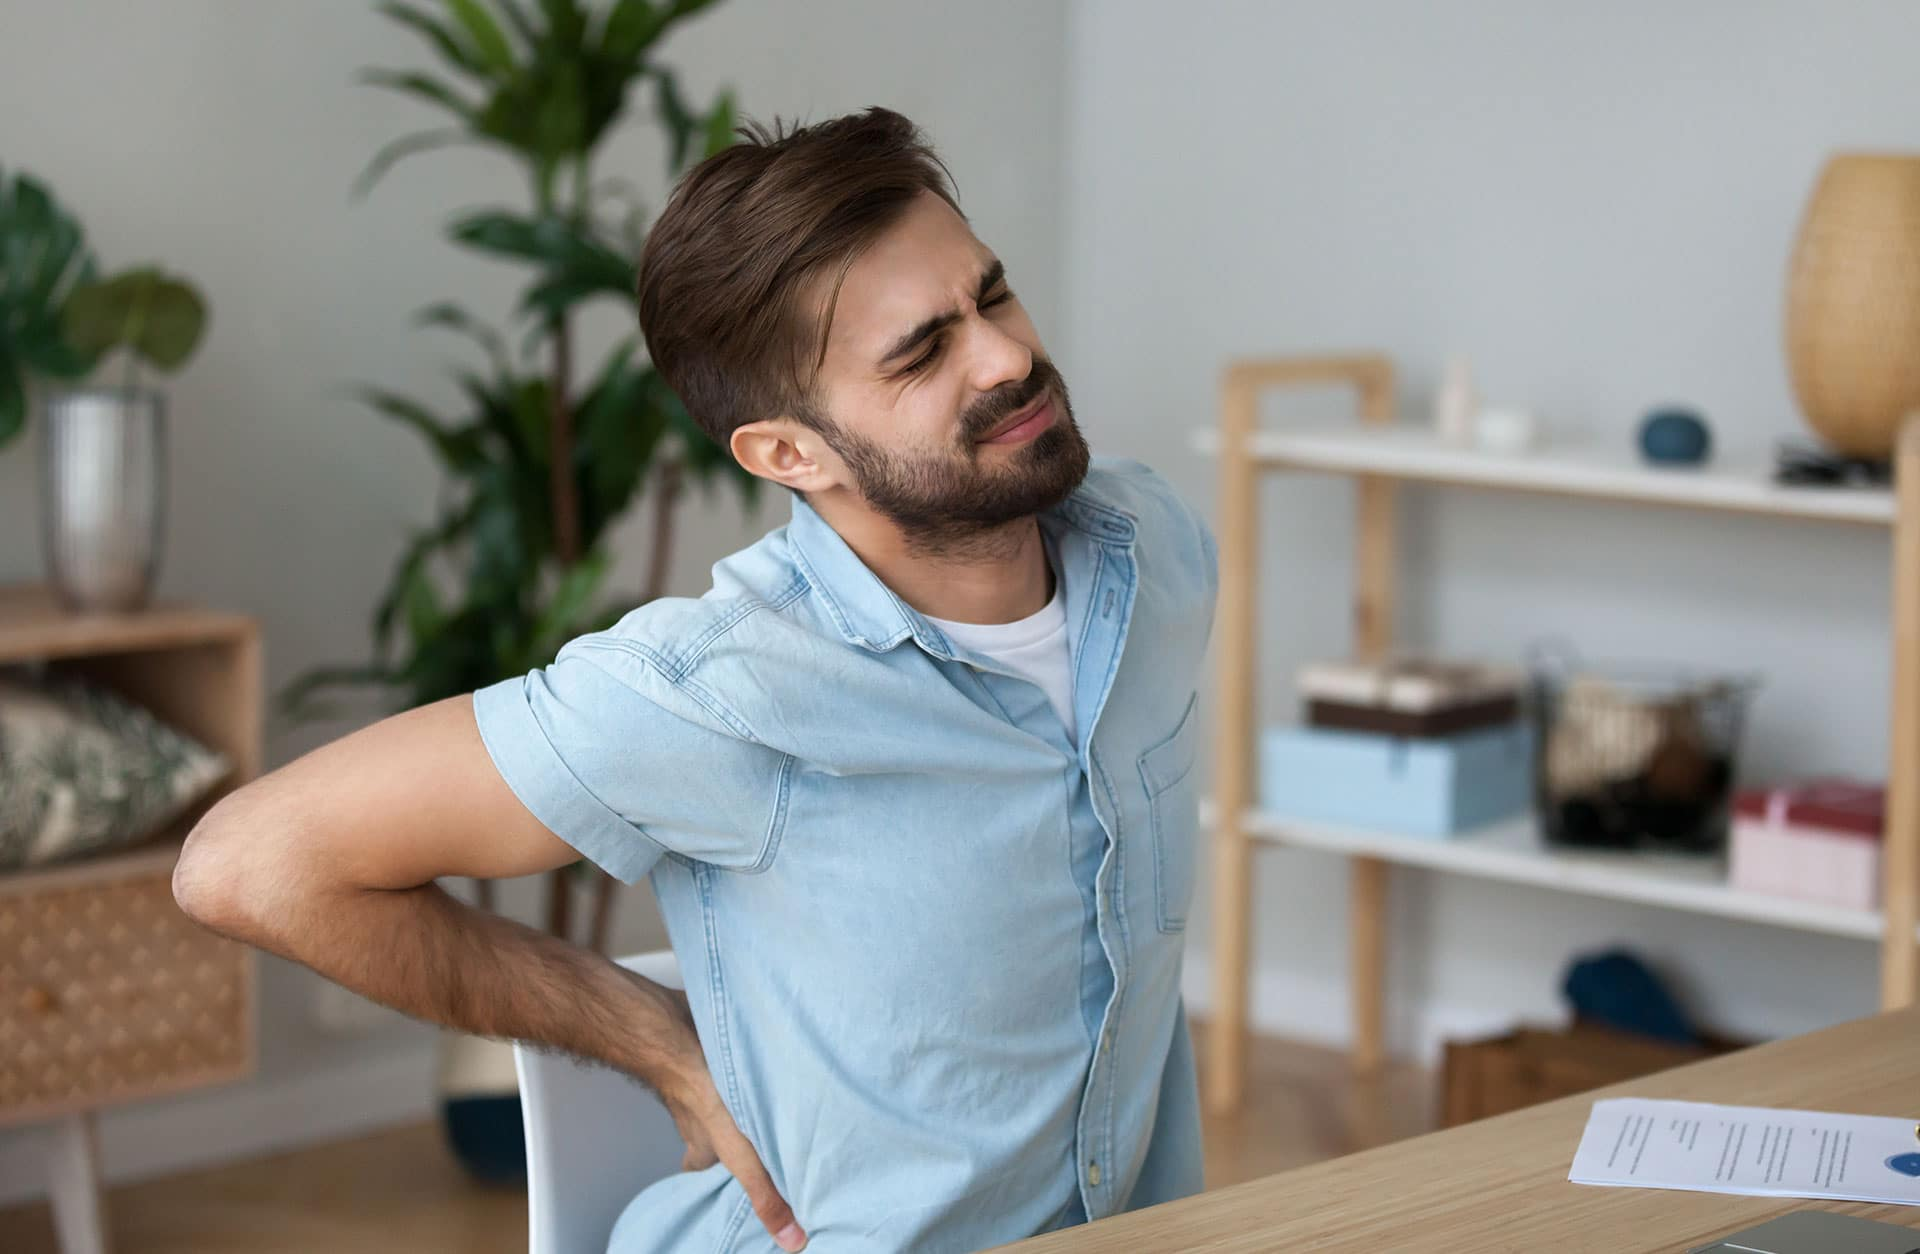 A man holding his back and grimacing in pain after a spinal cord injury